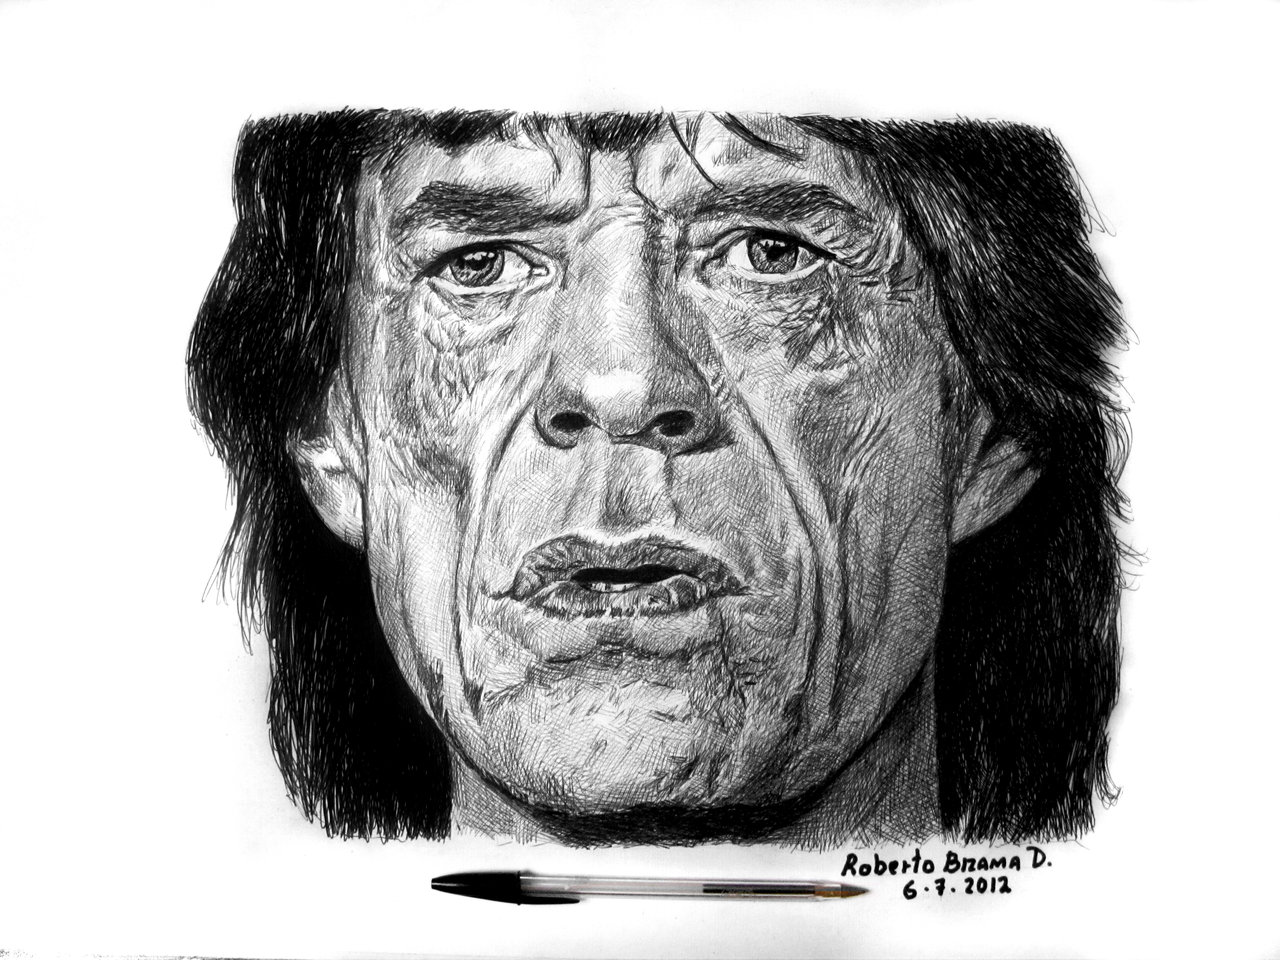 SIR MICK JAGGER by RobertoBizama SIR MICK JAGGER by RobertoBizama